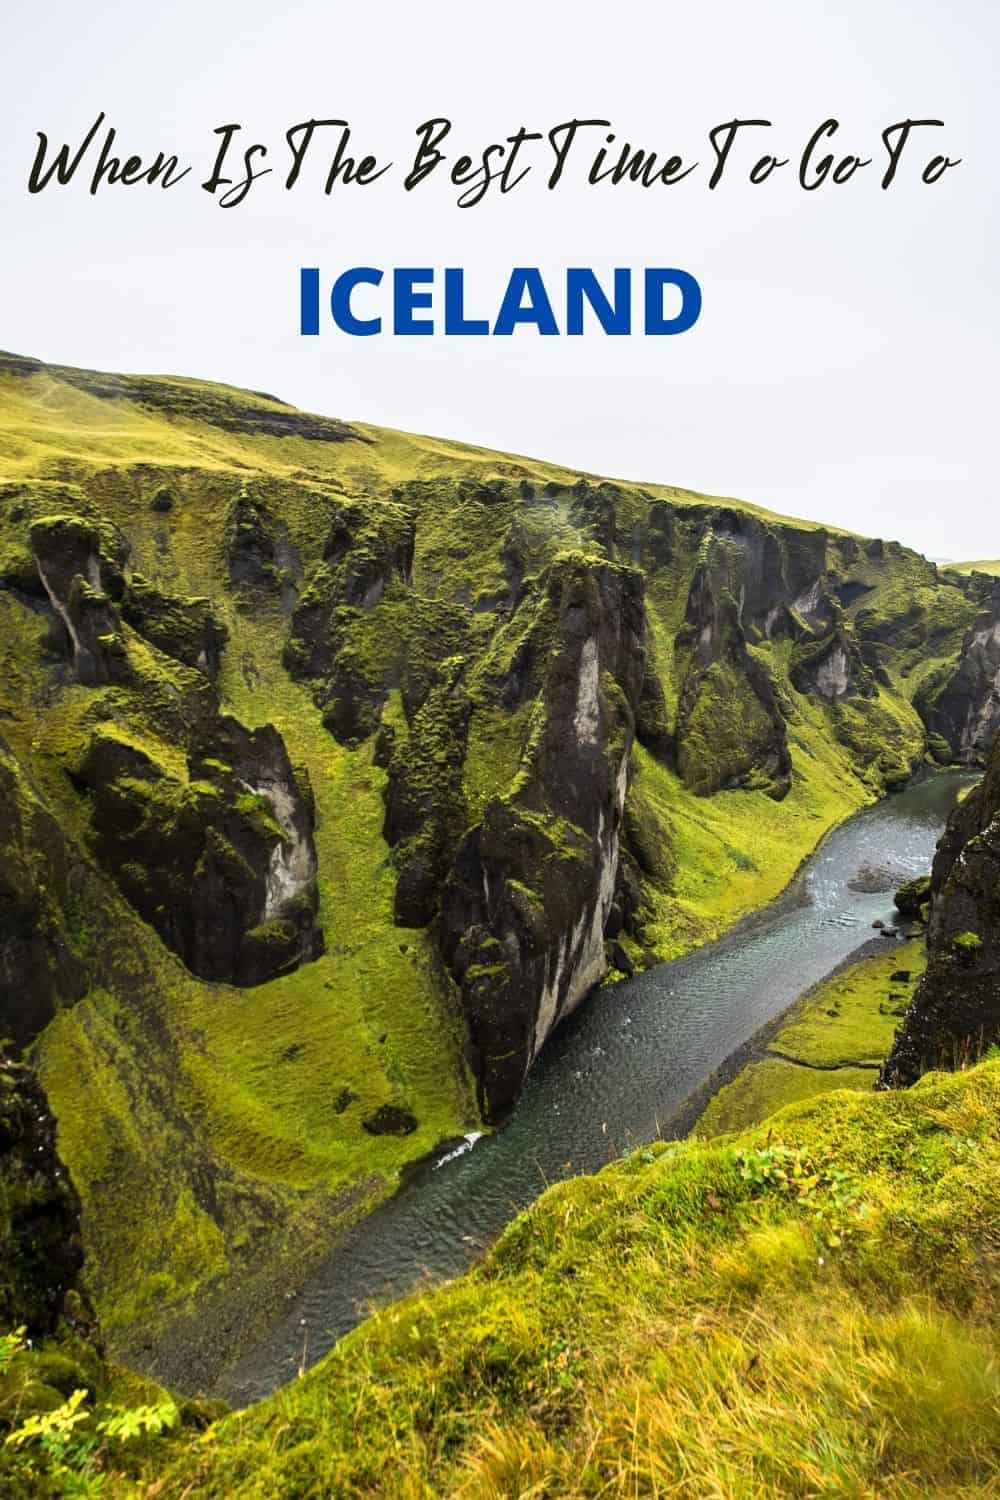 When Is The Best Time To Go To Iceland?